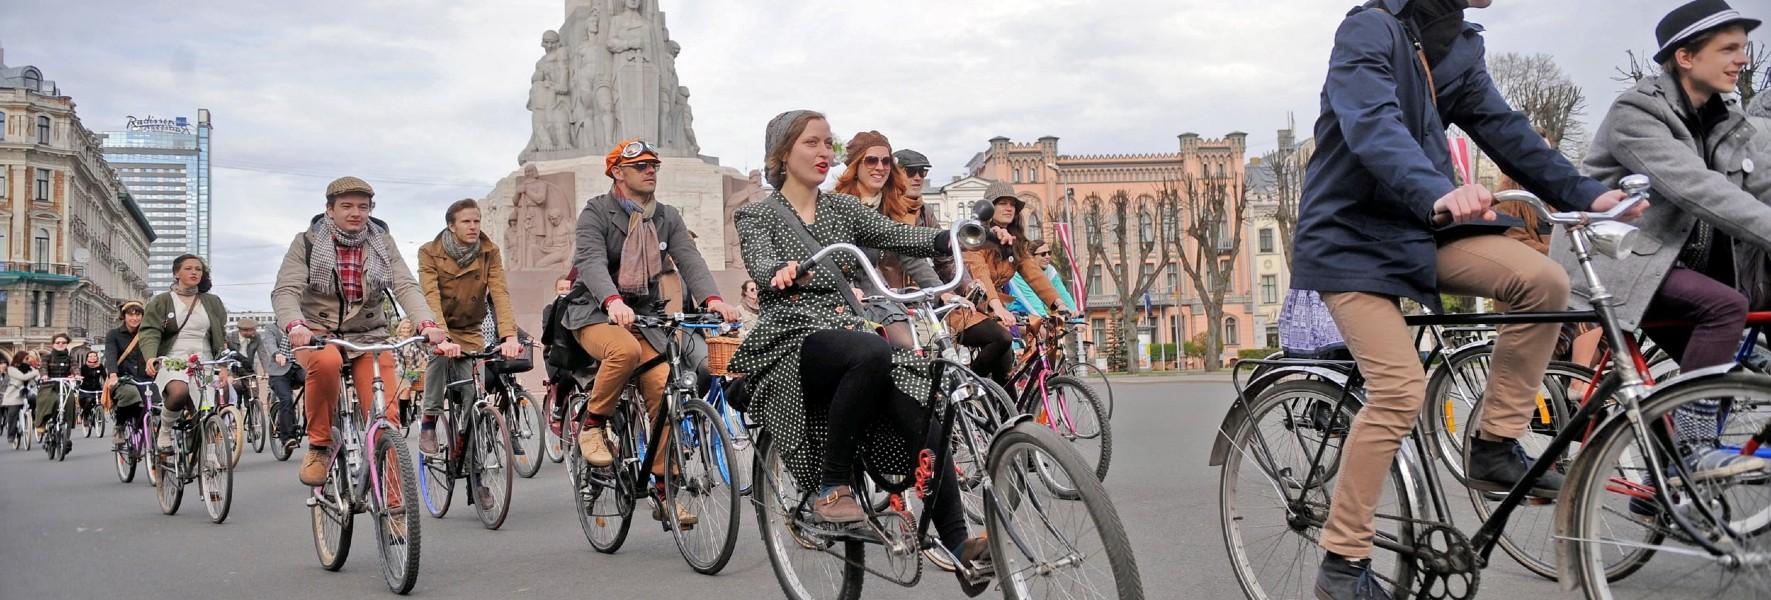 tweed ride Riga